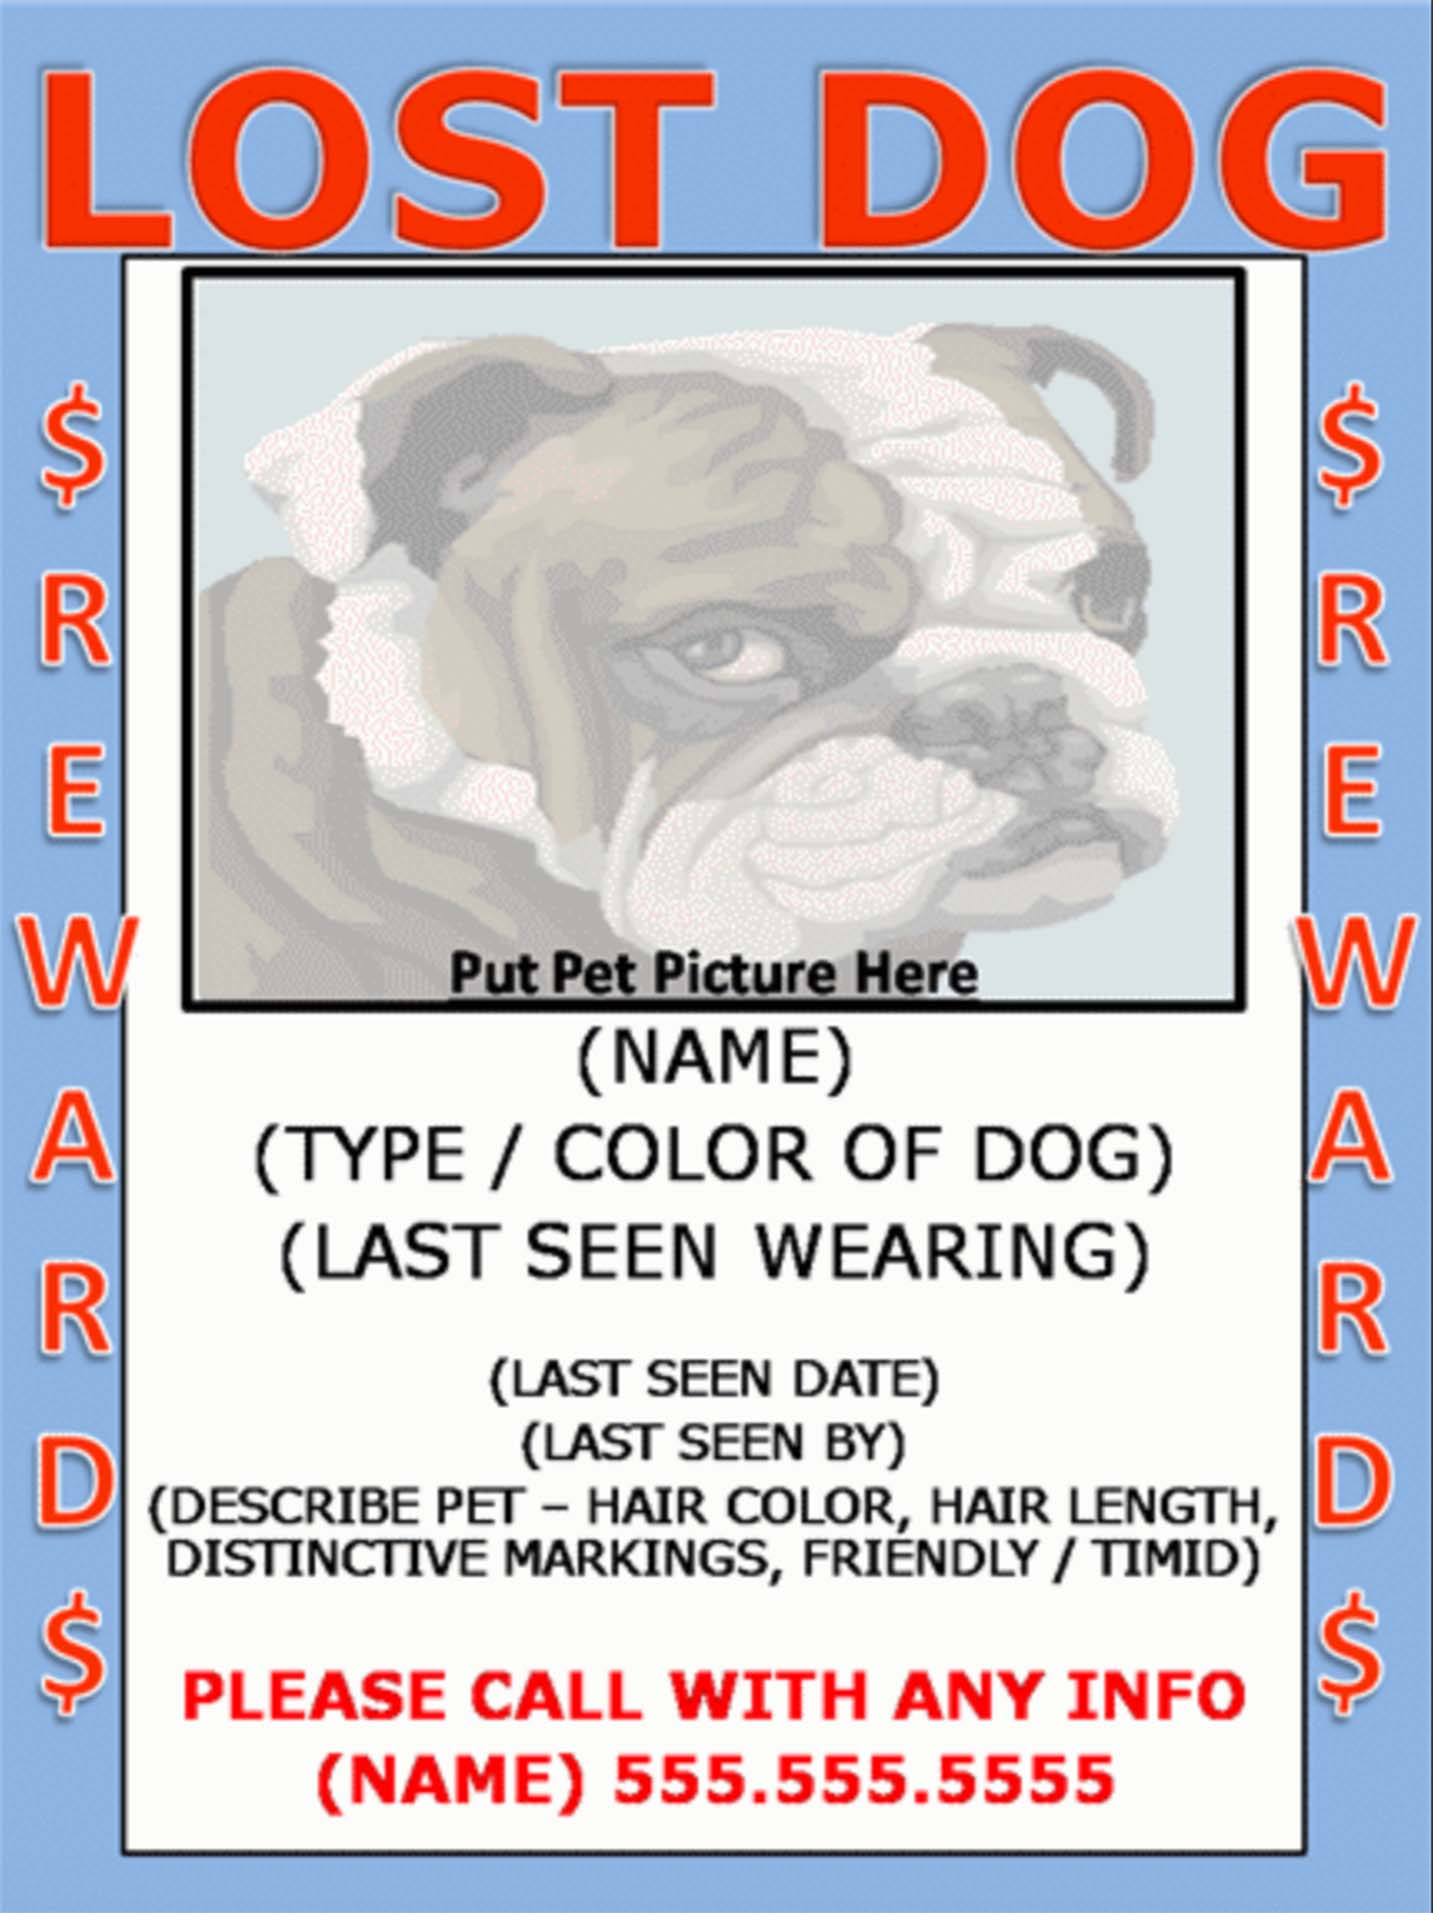 Pet Angel Santa Fe  Lost Dog Flyer Examples